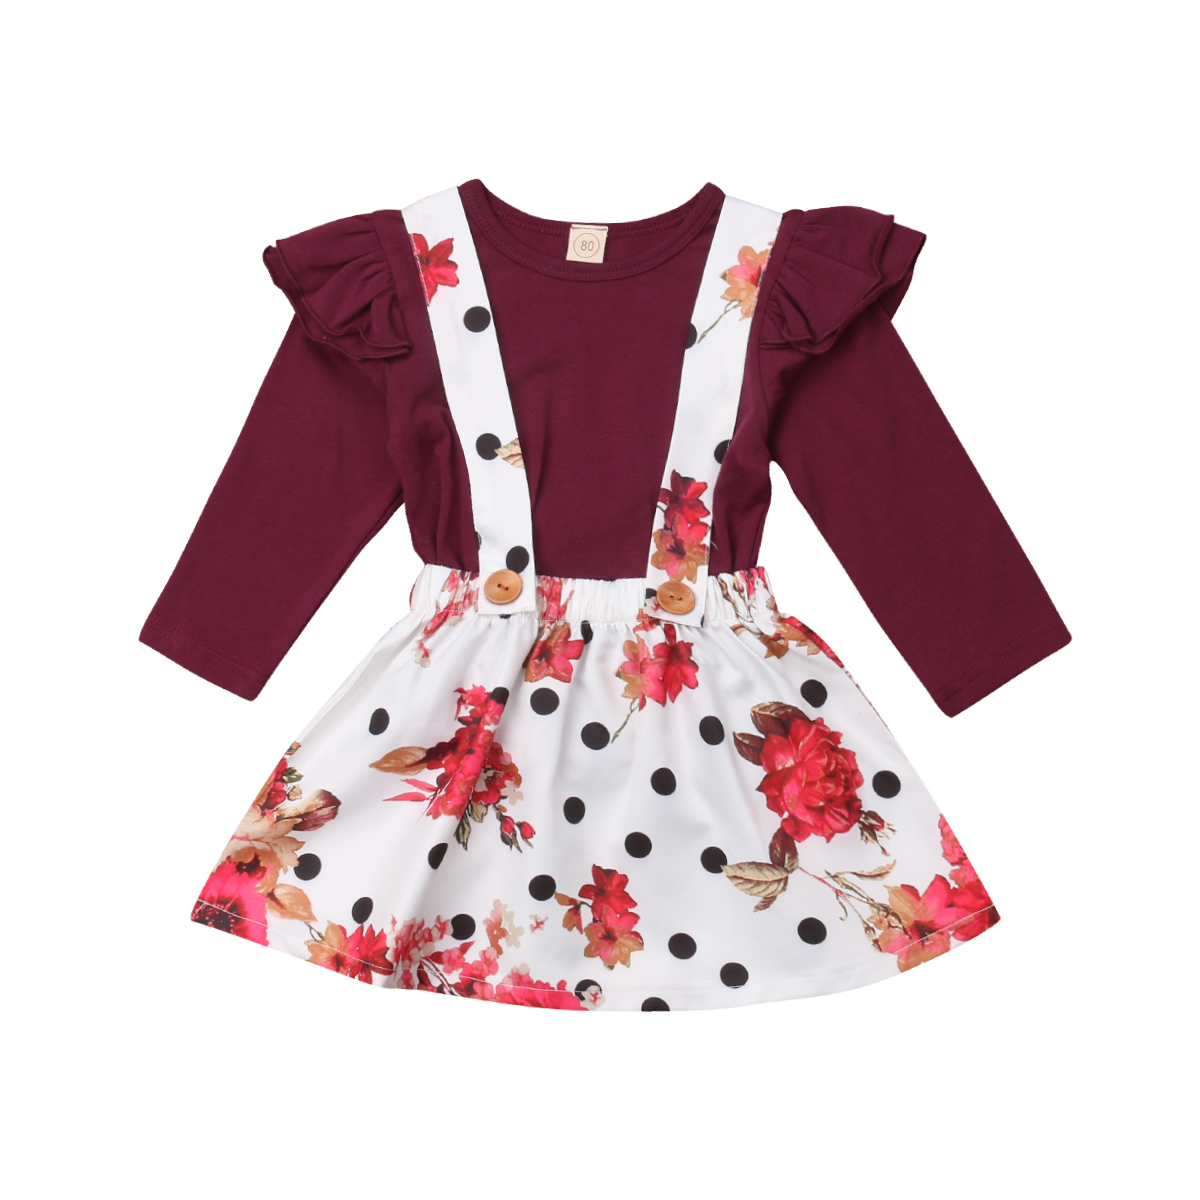 Autumn Dress Kids Baby Girl Fly Sleeve Red Tops Floral Tutu Polka Dots Dress Party Princess Clothes